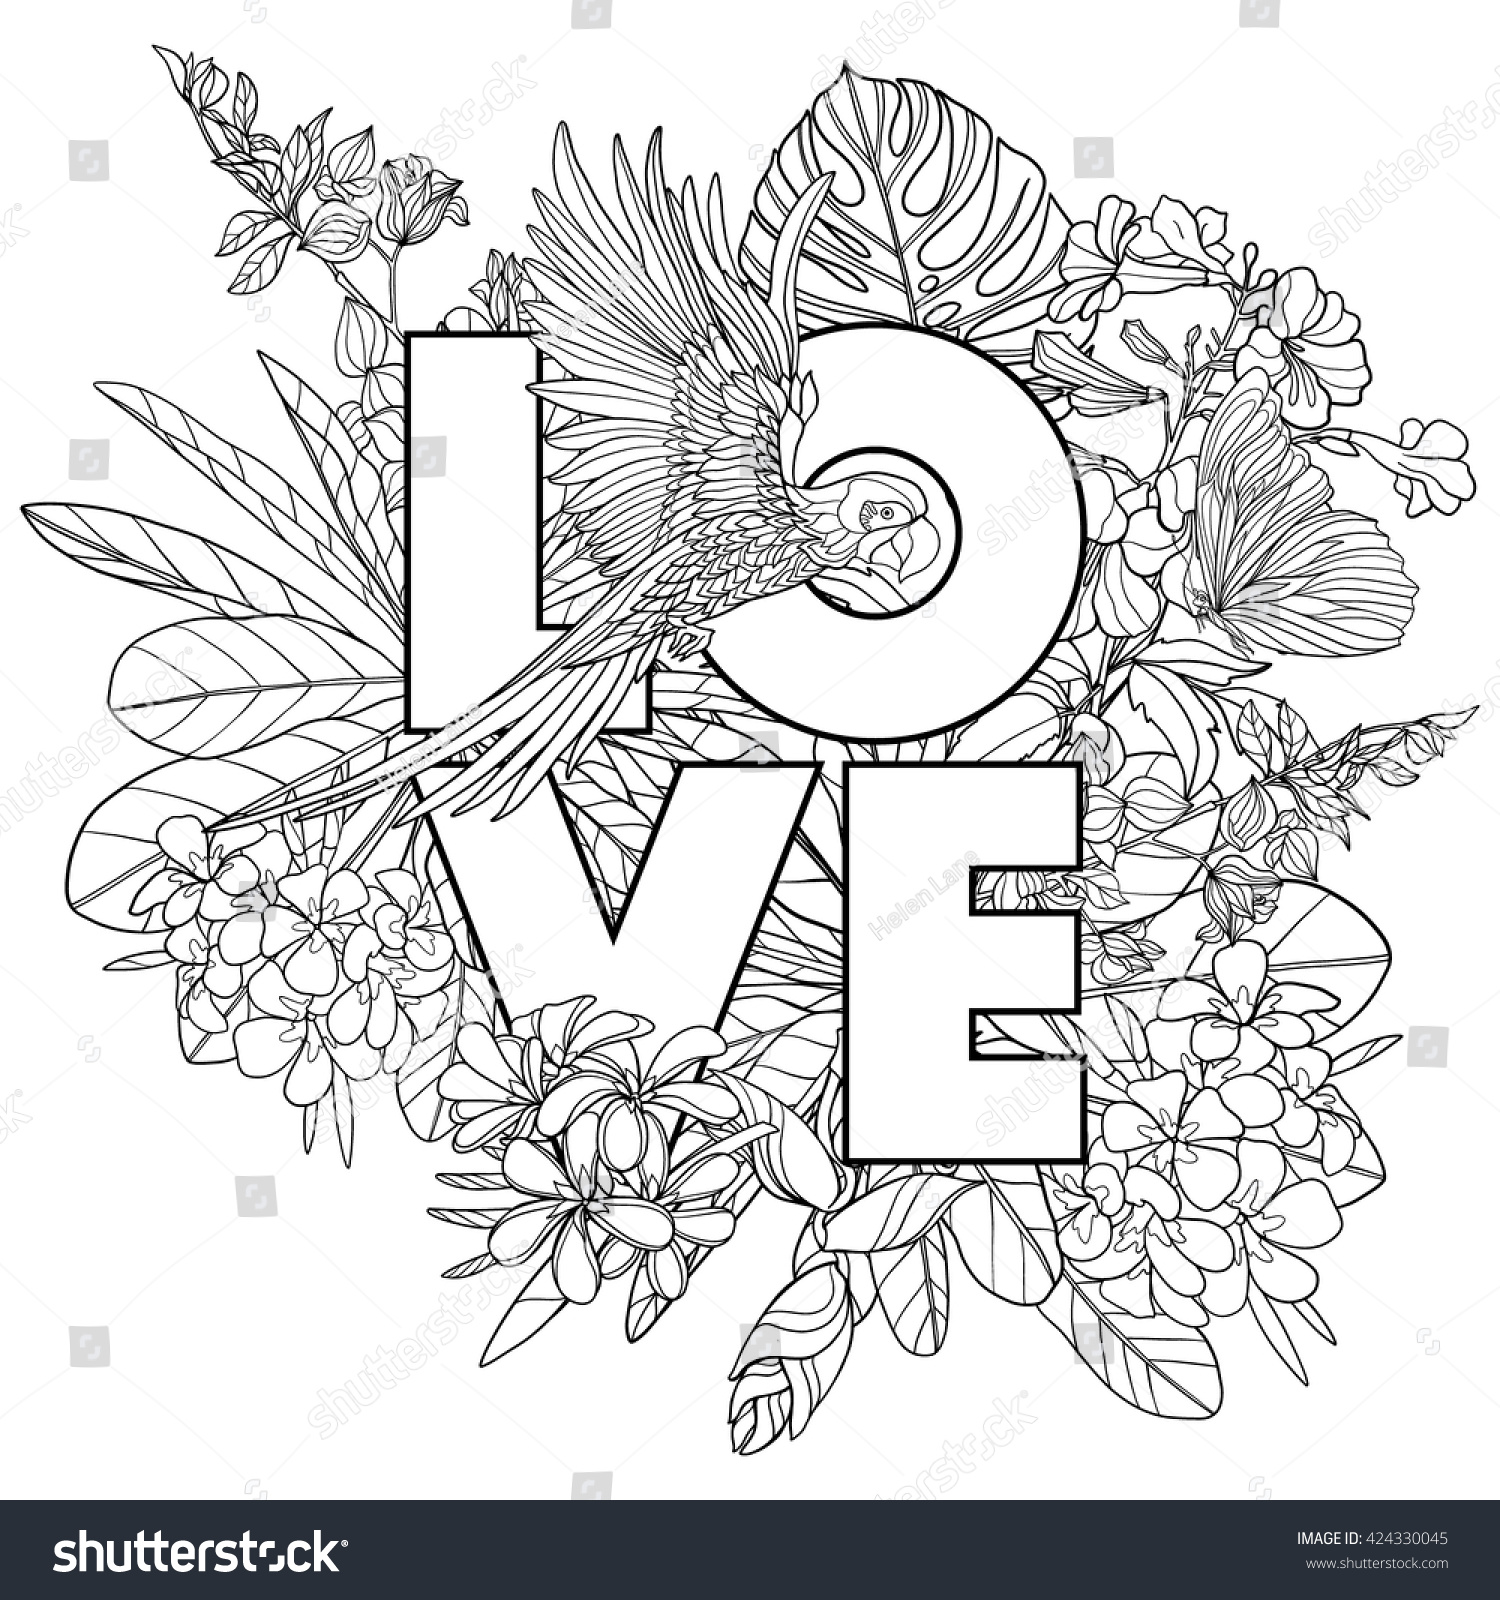 Adult Coloring Book Page With Word Love And Tropical Birds Plants